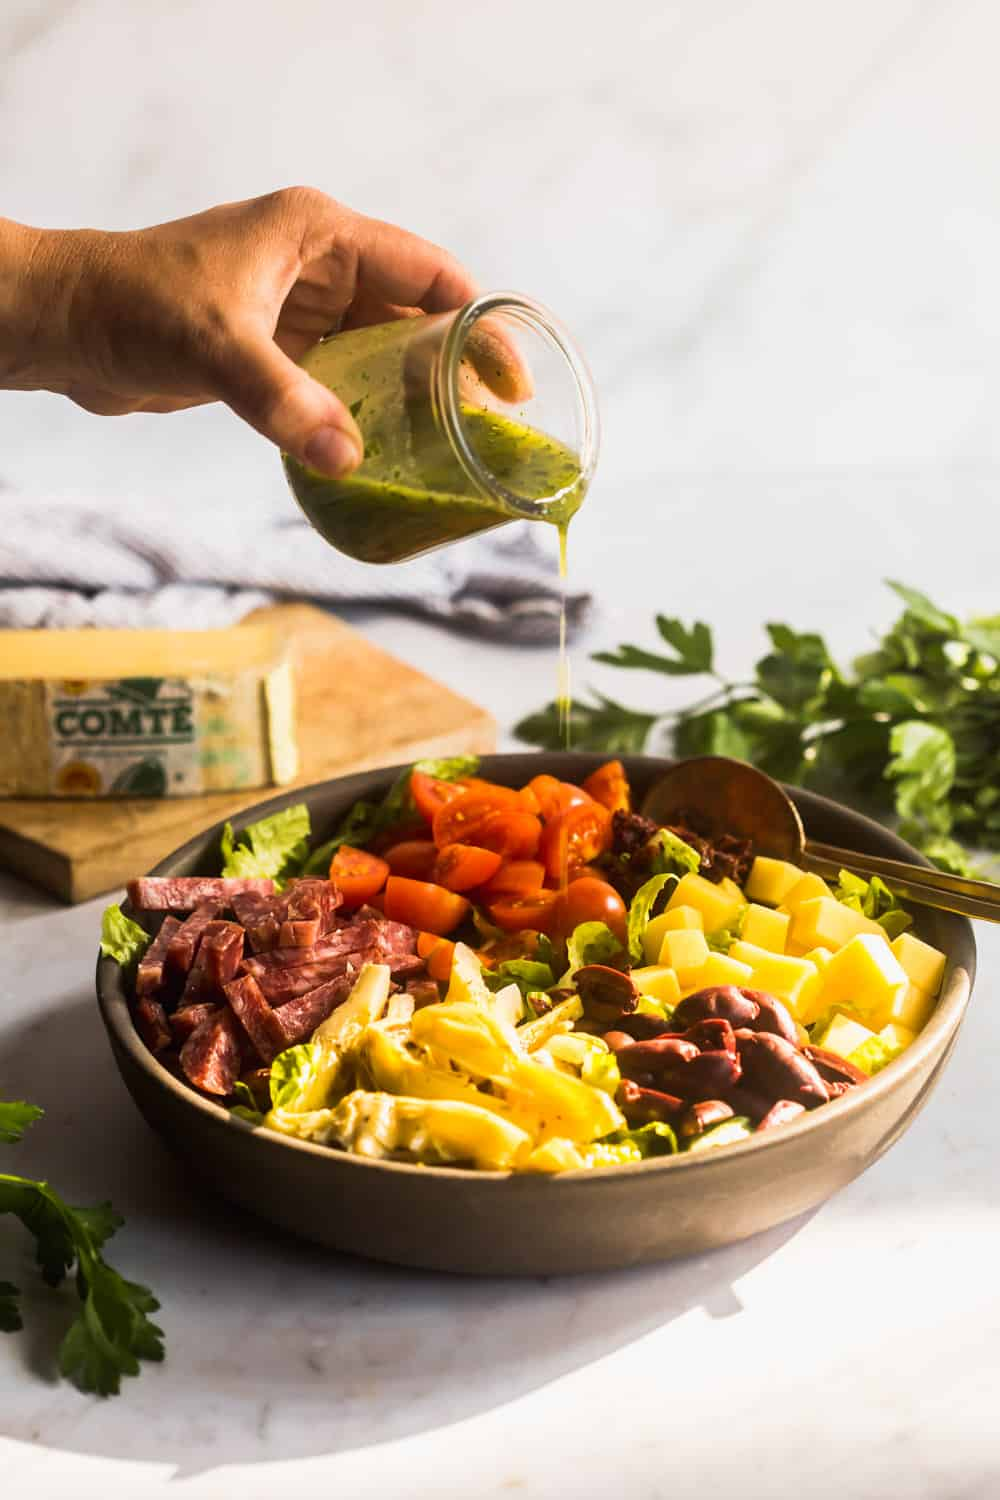 Woman's hand pouring green dressing over top a large bowl of chopped salad